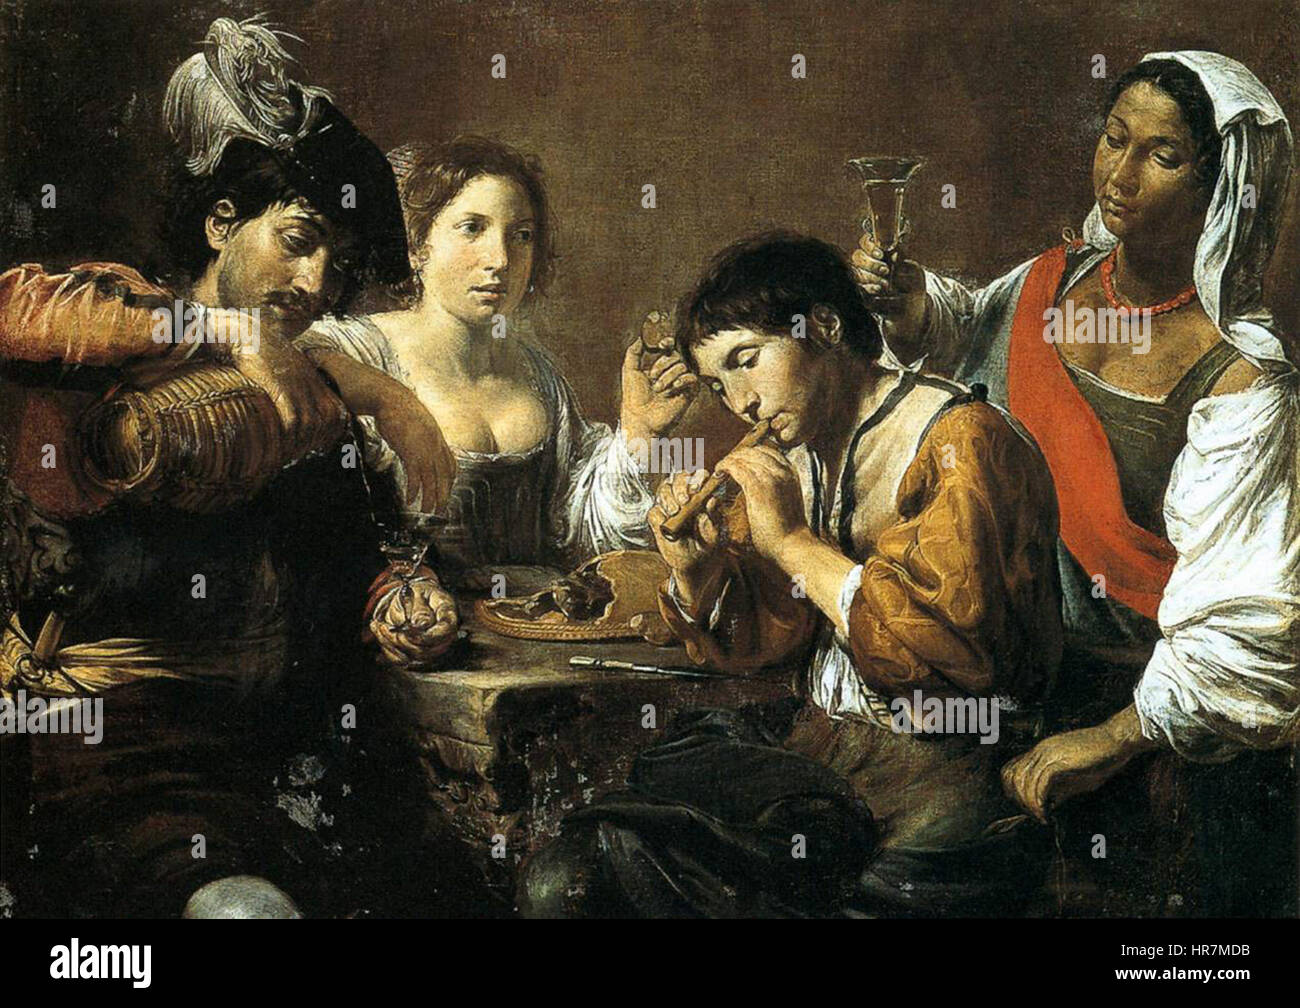 Valentin de Boulogne, Musician and Drinkers - Stock Image